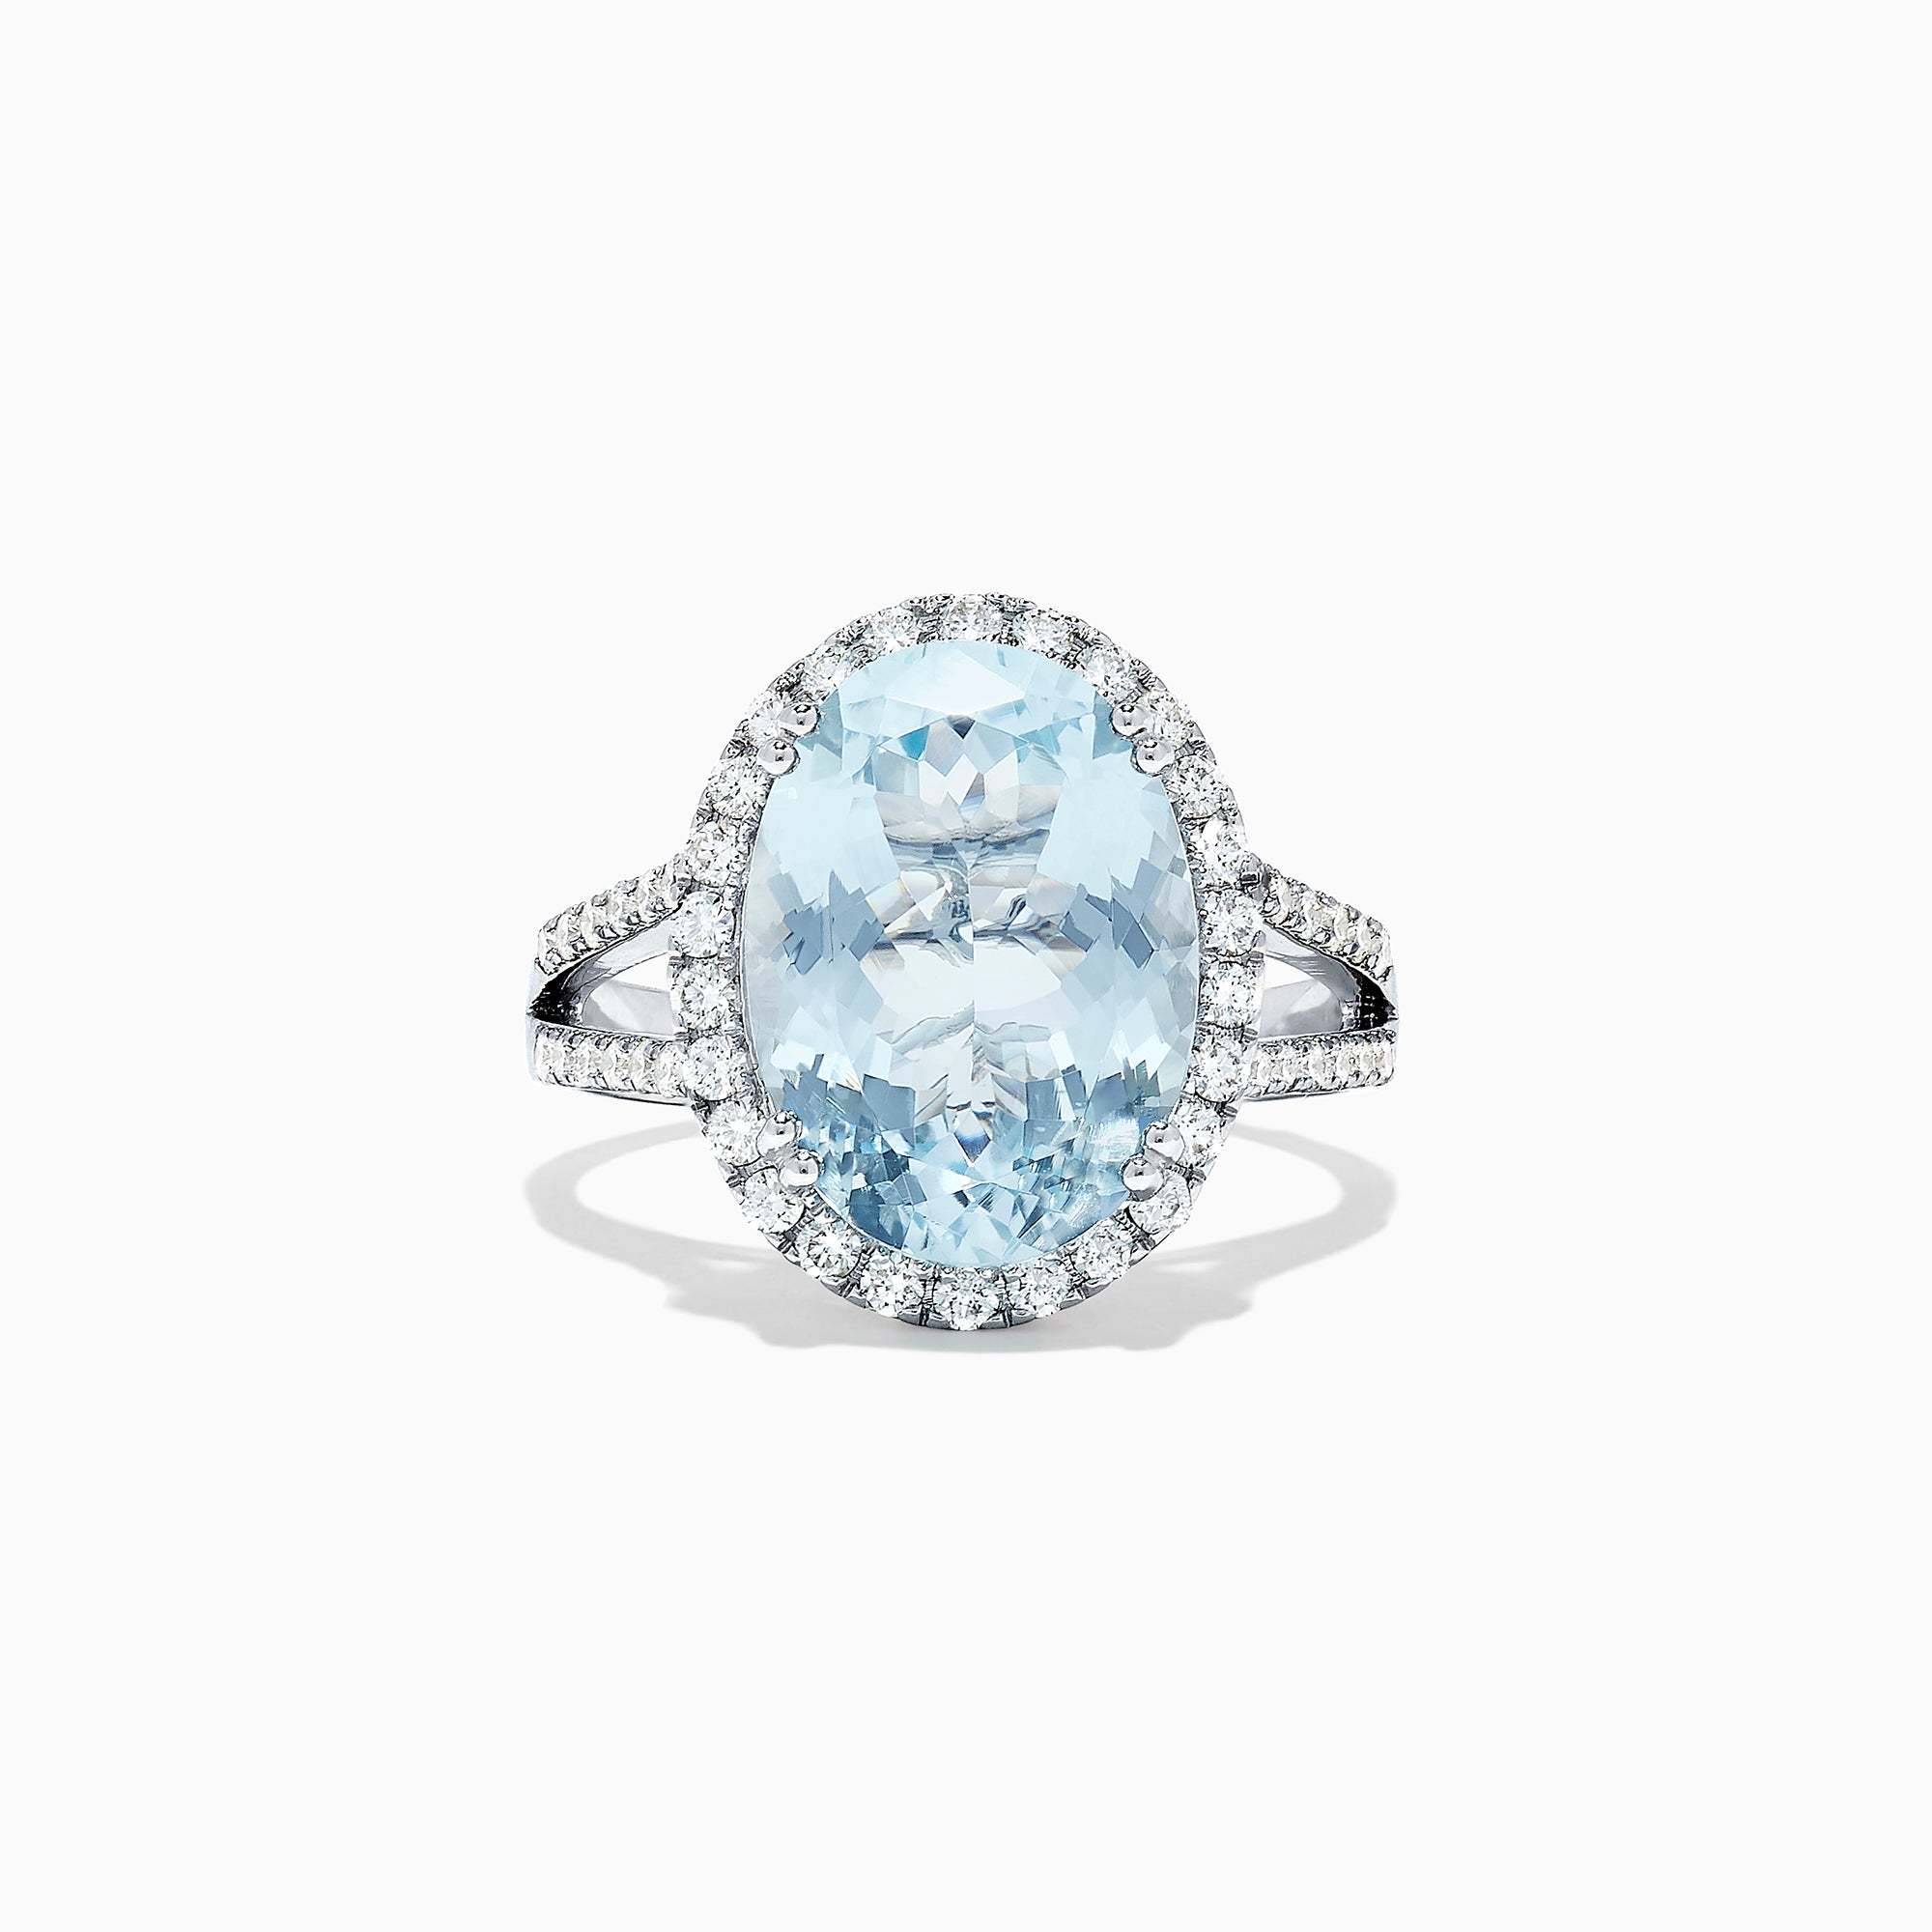 Effy Aquarius 14K White Gold Aquamarine and Diamond Cocktail Ring, 5.38 TCW